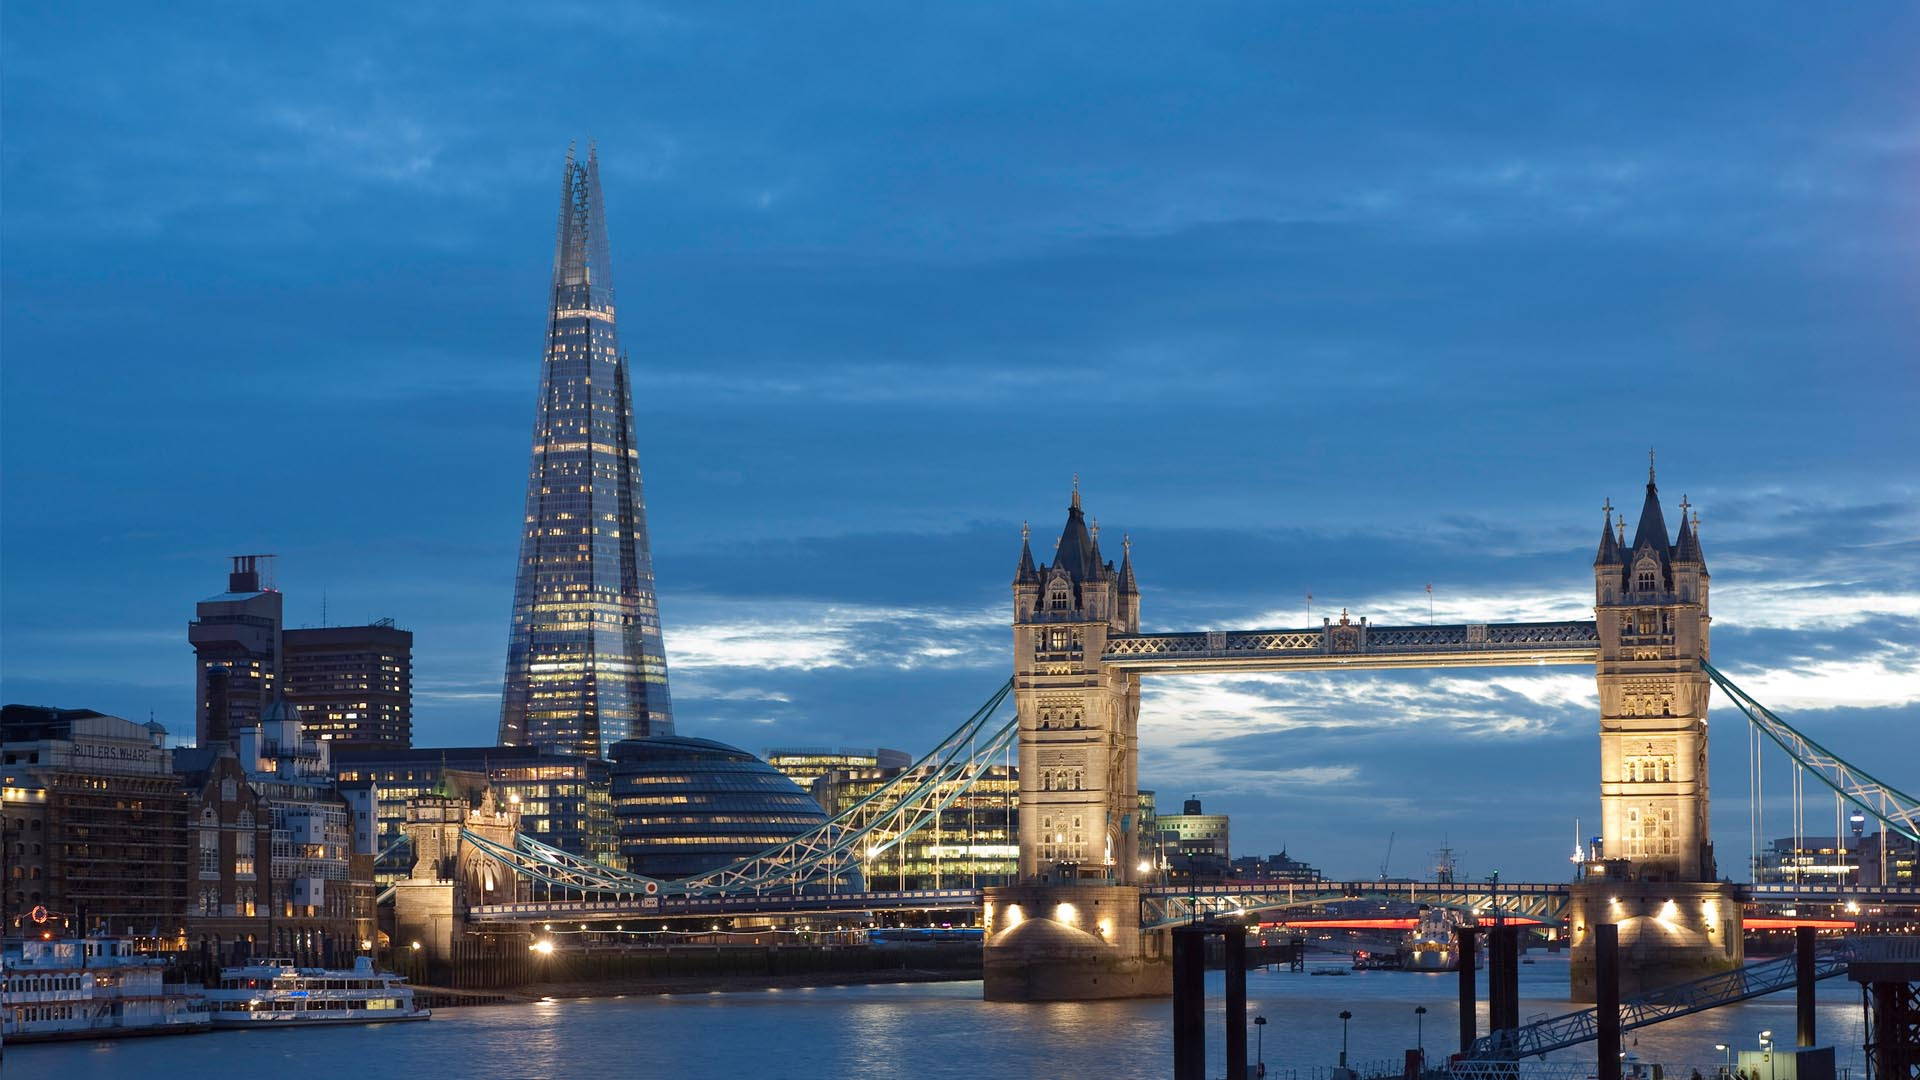 Property Marketing Agency | Wordsearch | The Shard Blog